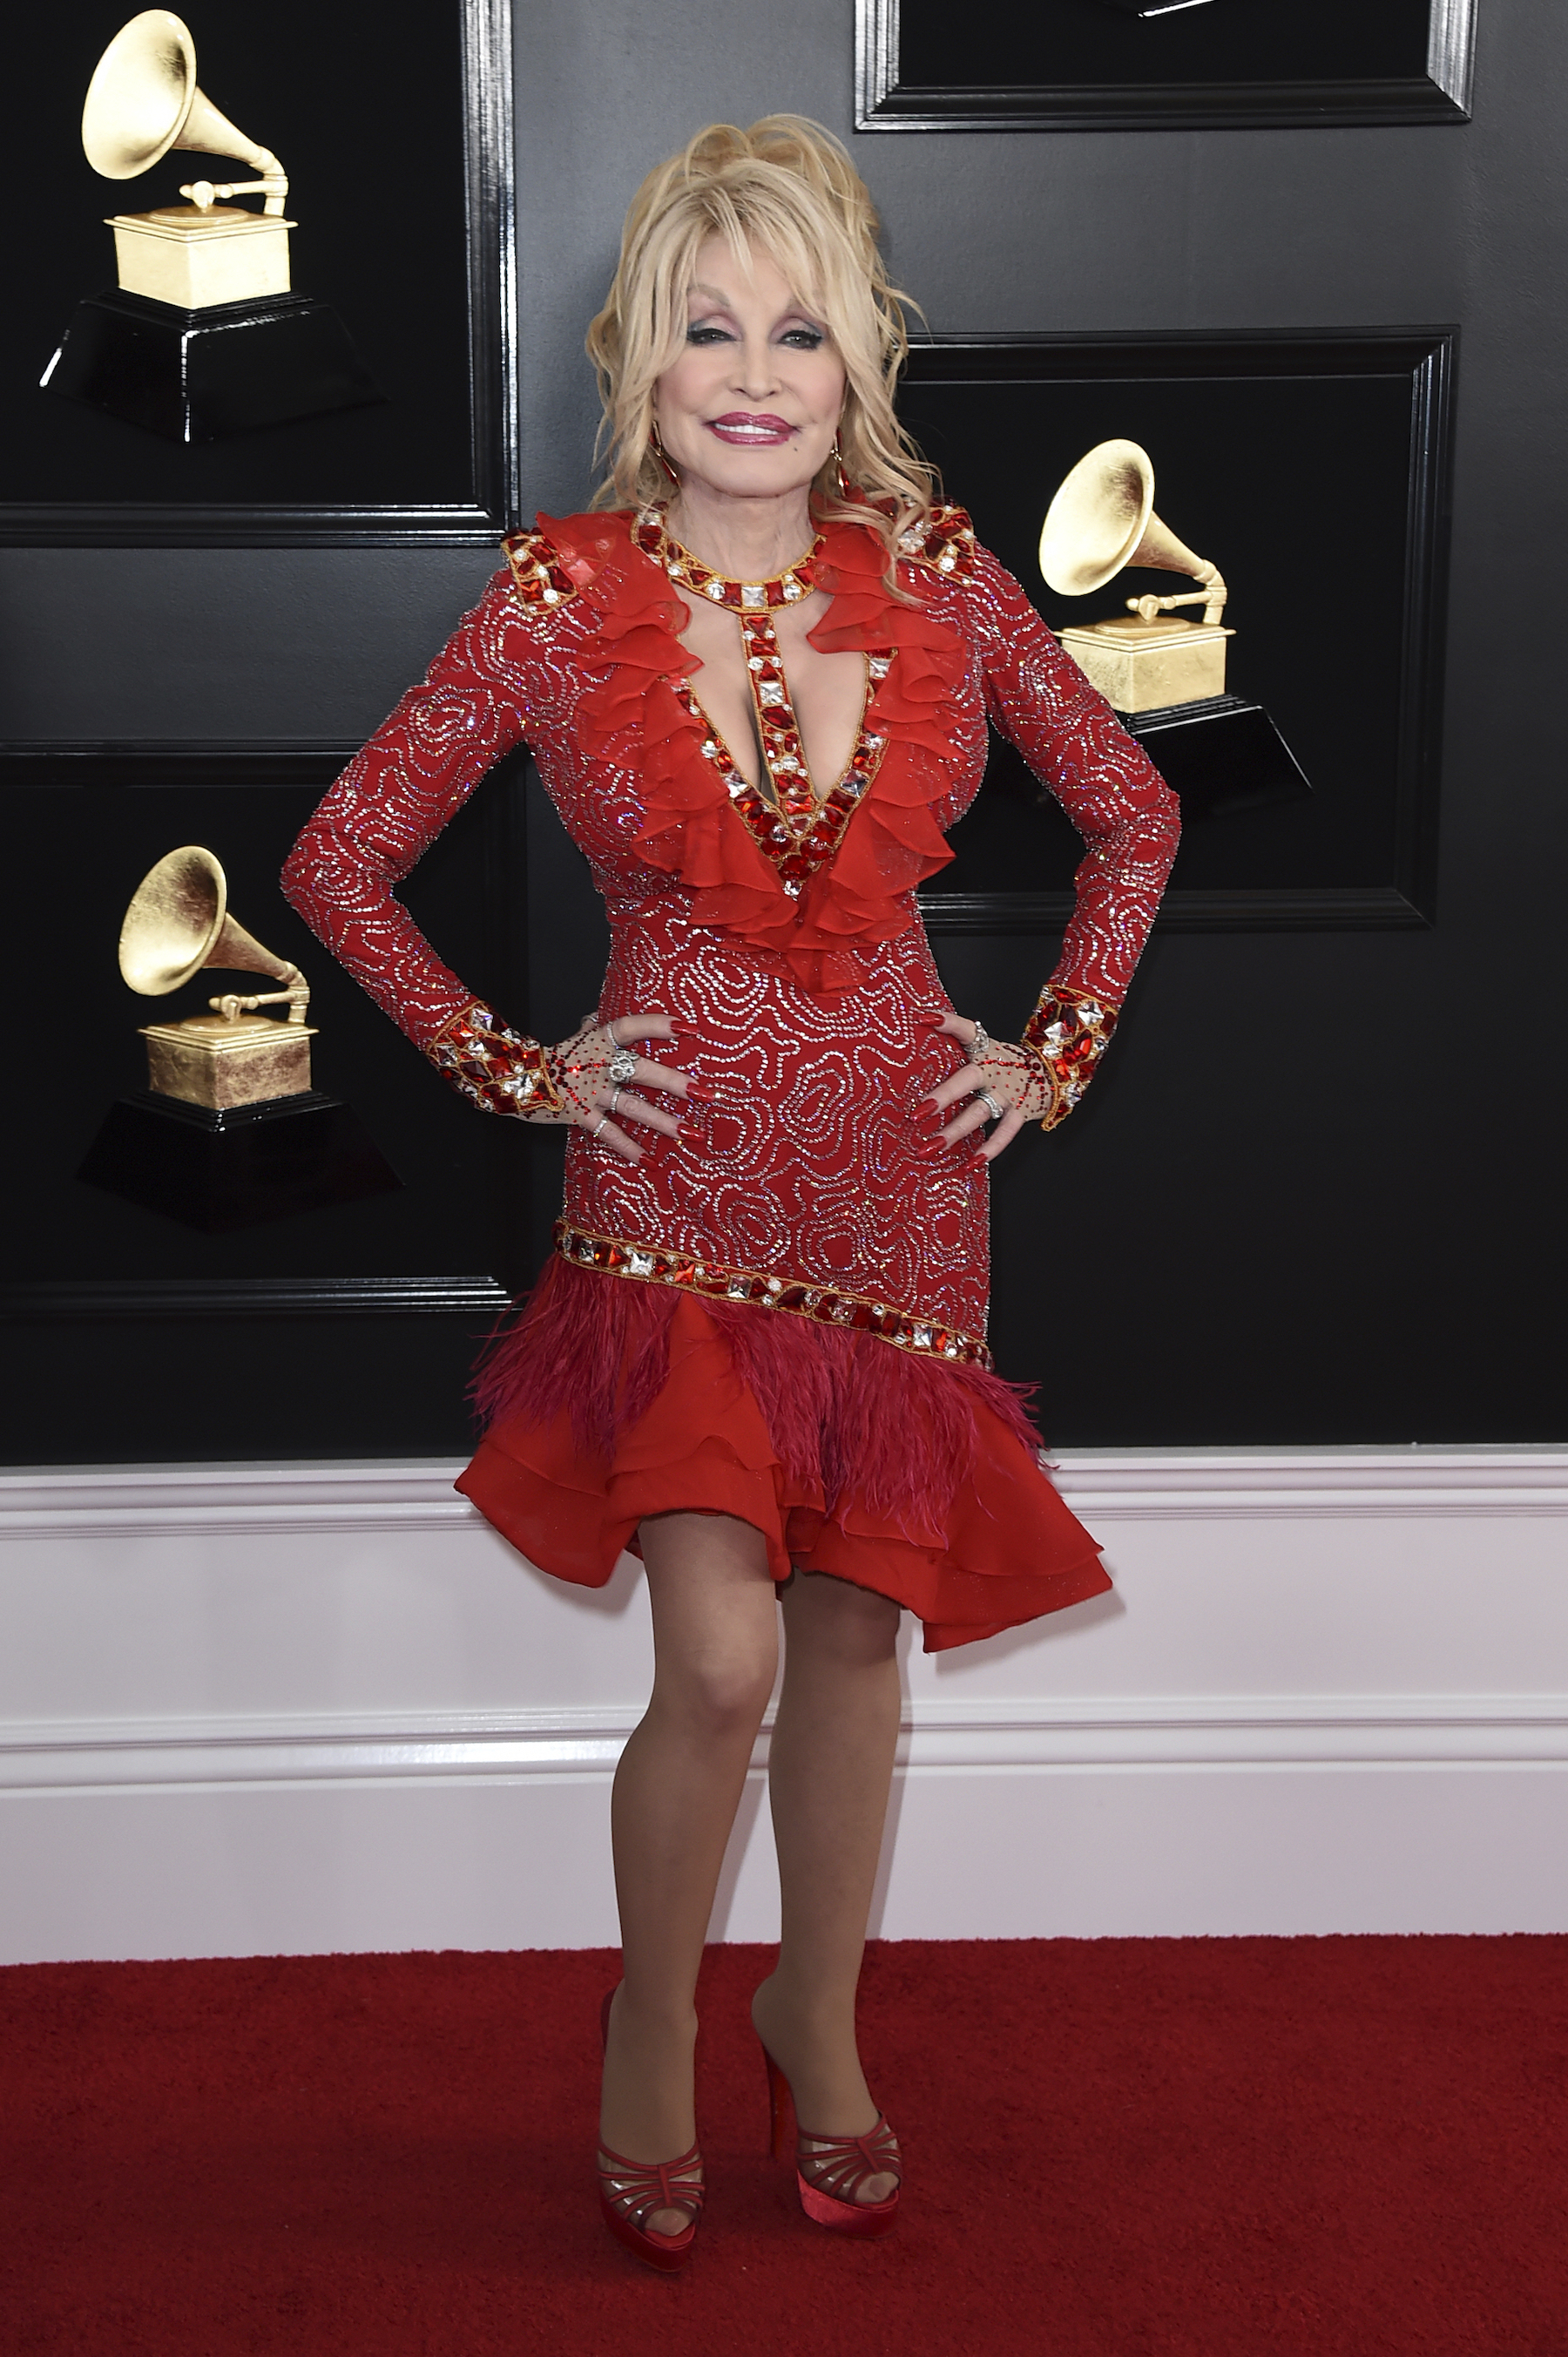 "<div class=""meta image-caption""><div class=""origin-logo origin-image ap""><span>AP</span></div><span class=""caption-text"">Dolly Parton arrives at the 61st annual Grammy Awards at the Staples Center on Sunday, Feb. 10, 2019, in Los Angeles. (Jordan Strauss/Invision/AP)</span></div>"